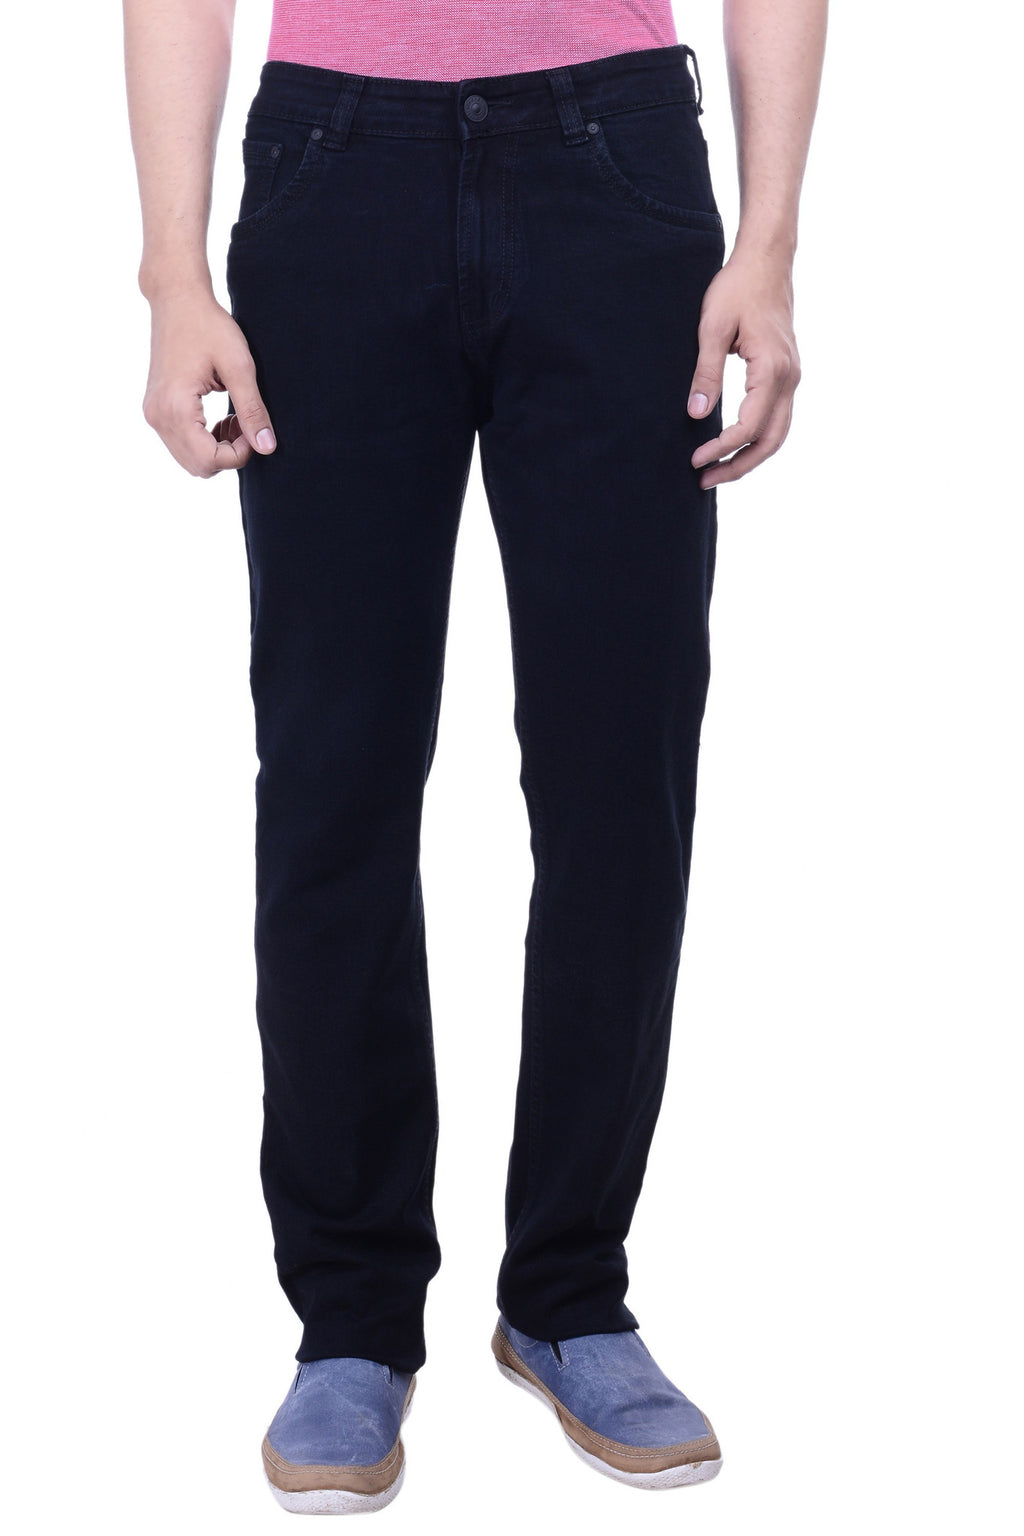 Hoffmen Slim Fit Men's Black Jeans BSG3903